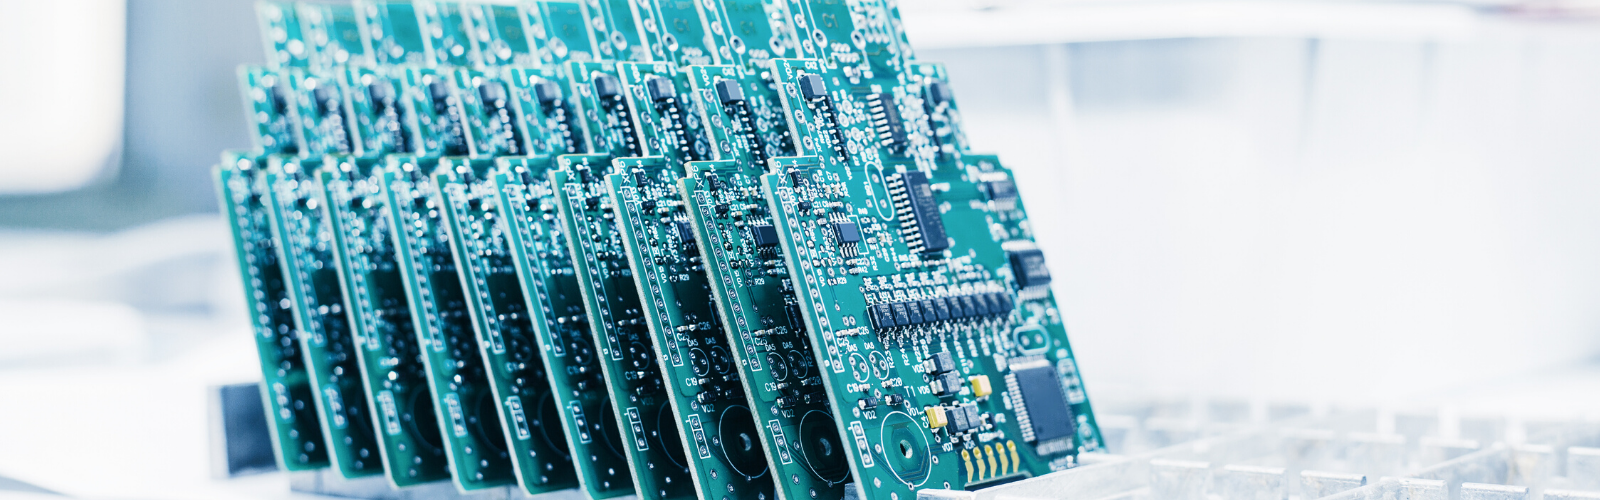 Tray of green circuit boards completed and ready for packaging in a RoHS certified manufacturing facility.